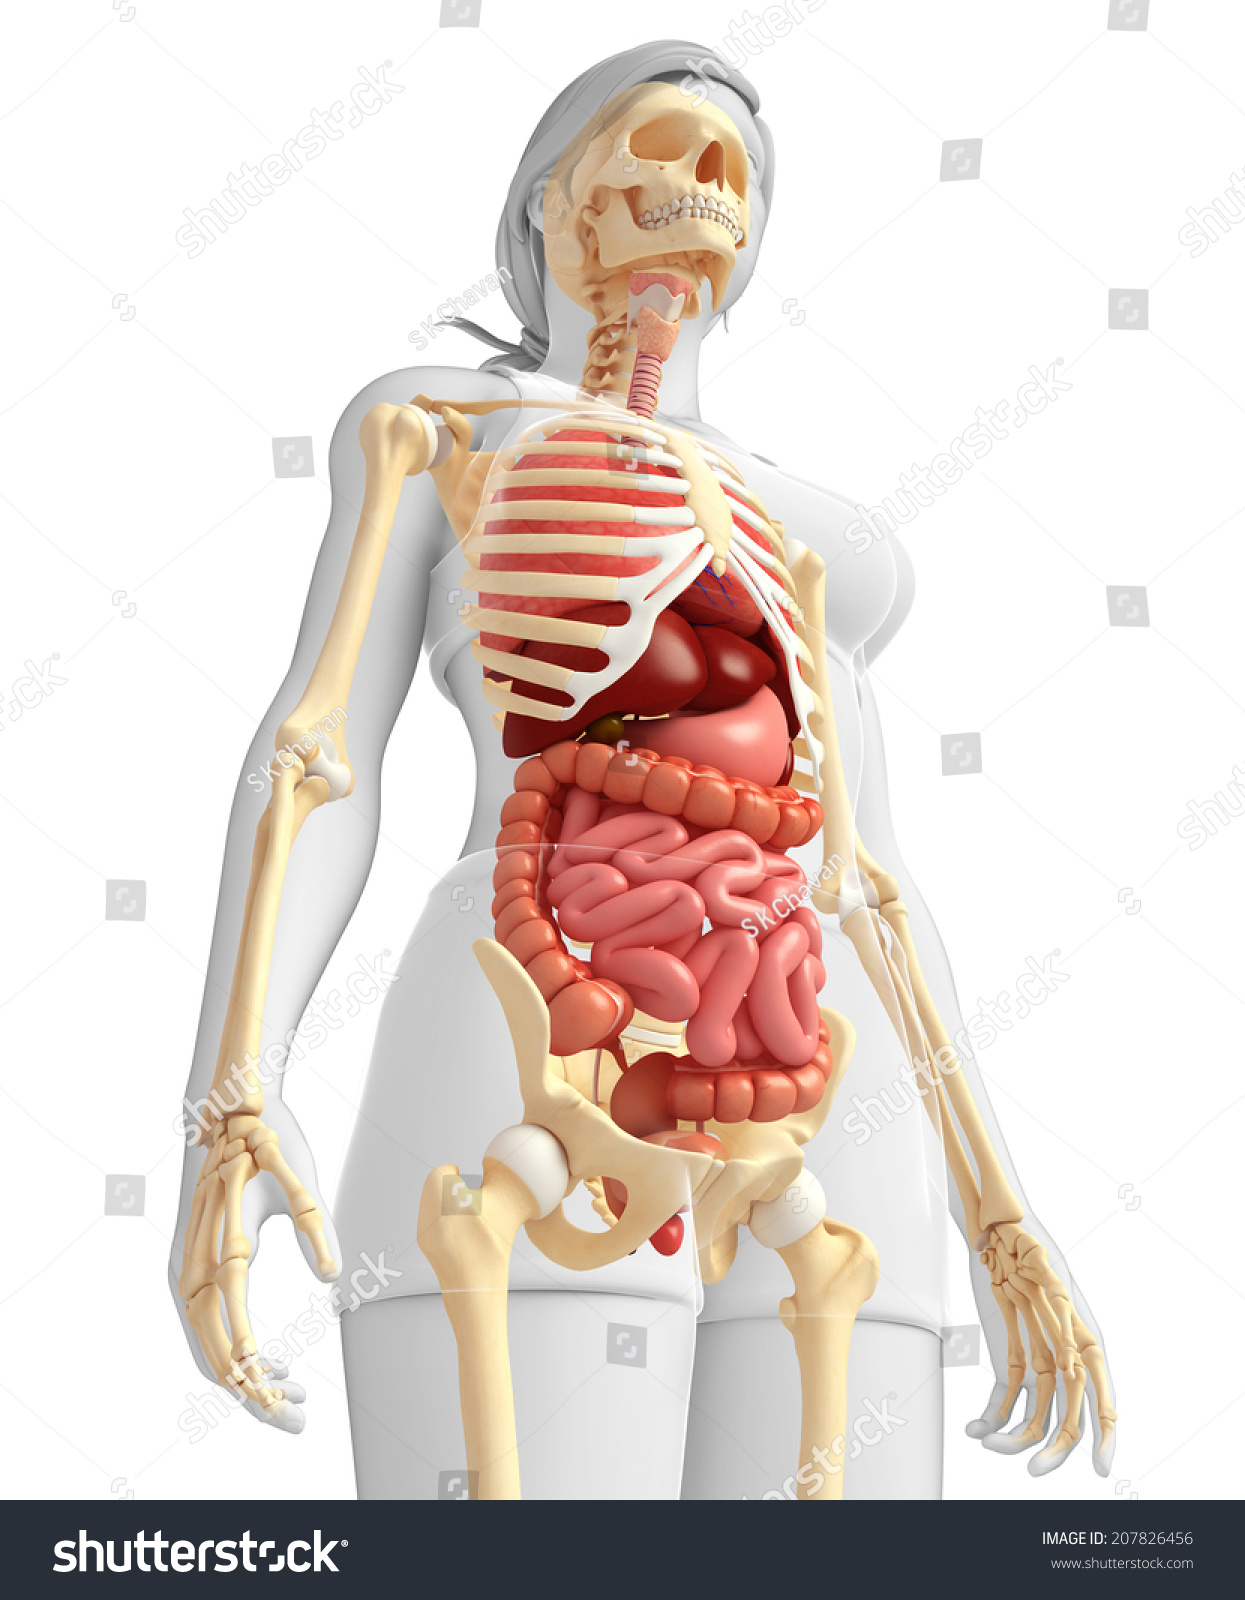 diagram of the esophagus and stomach illustration female skeleton digestive system stock